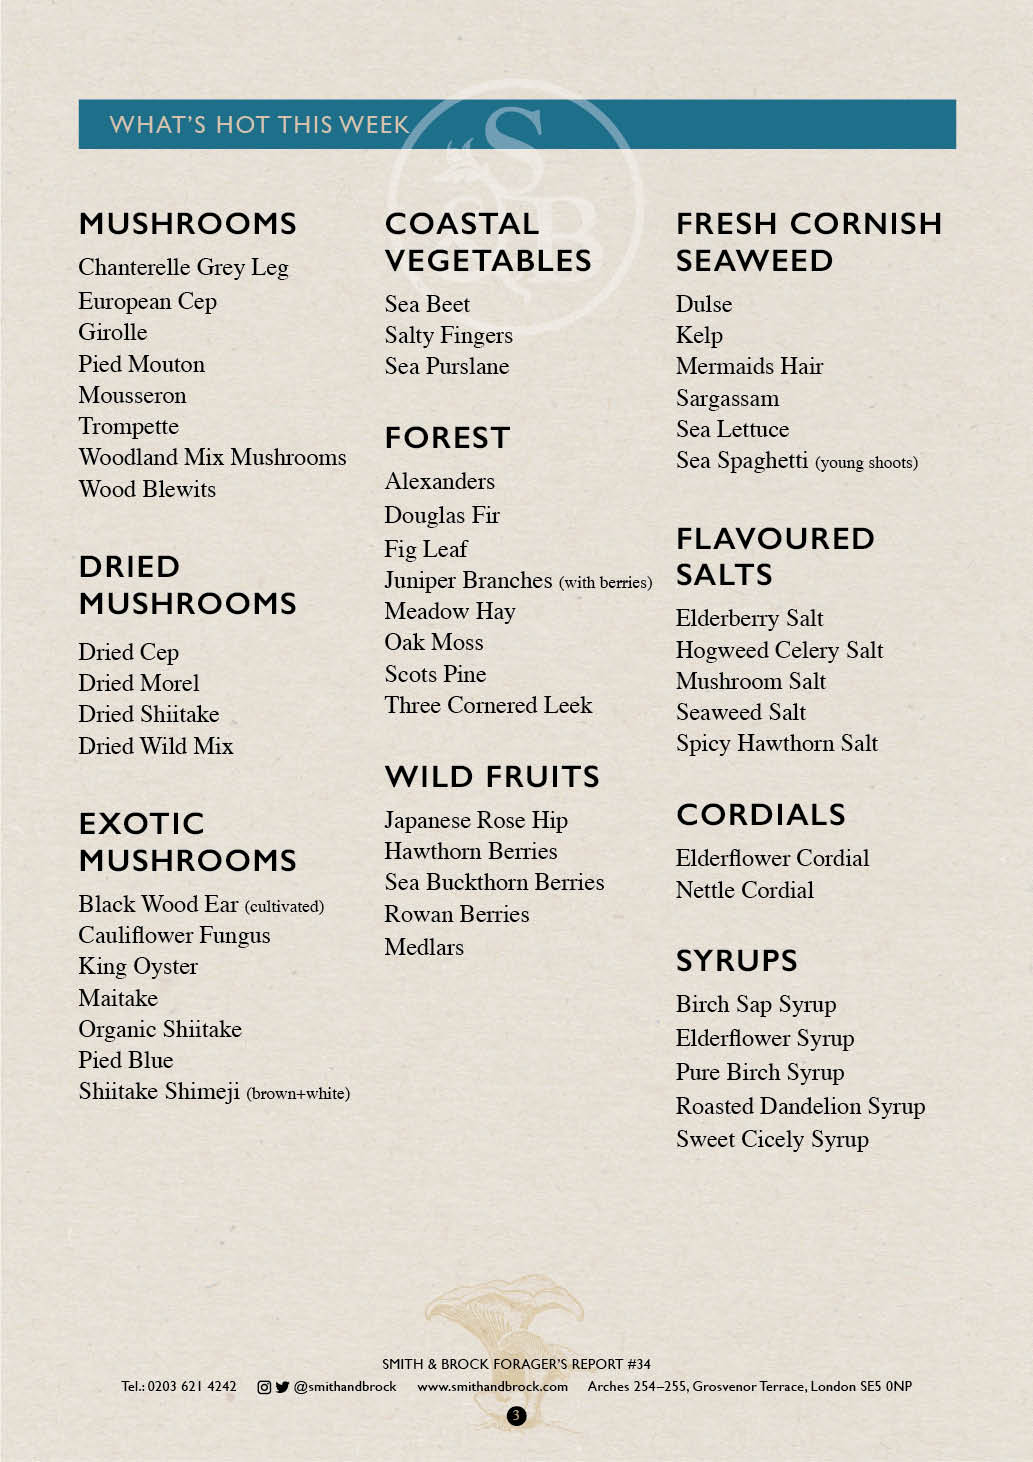 Smith&Brock Foraged Products Report 25 Nov 2019 34 3